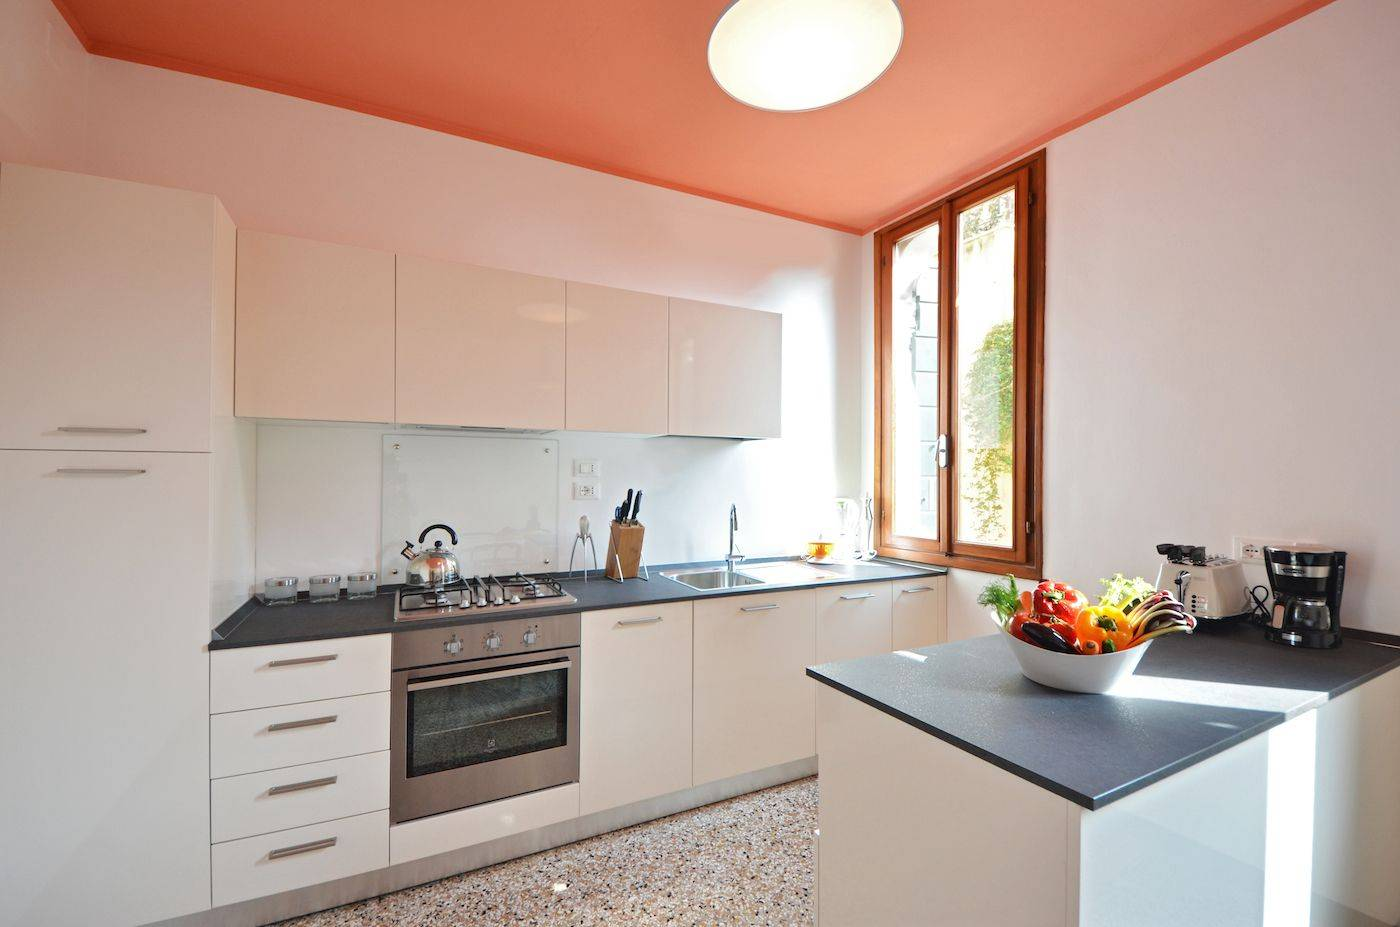 spacious dining room with very functional kitchen and view on gardens